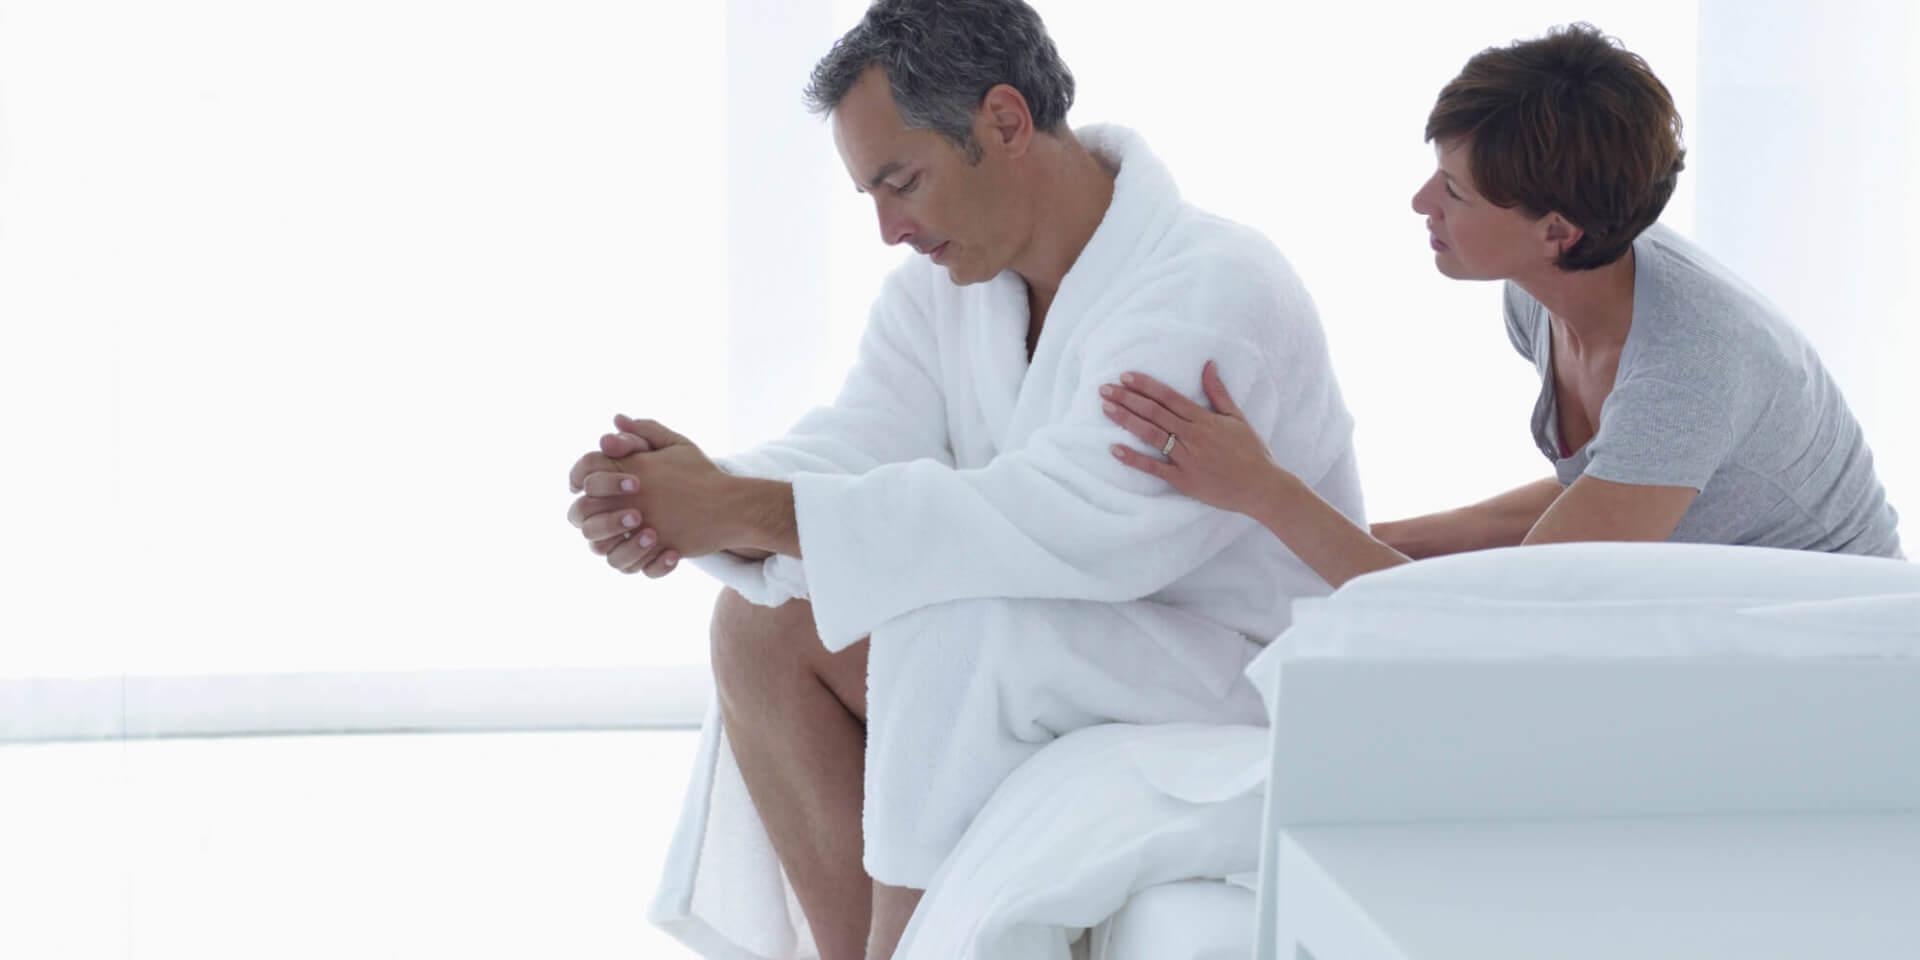 5 Health Conditions That Could Be Causing Erectile Dysfunction